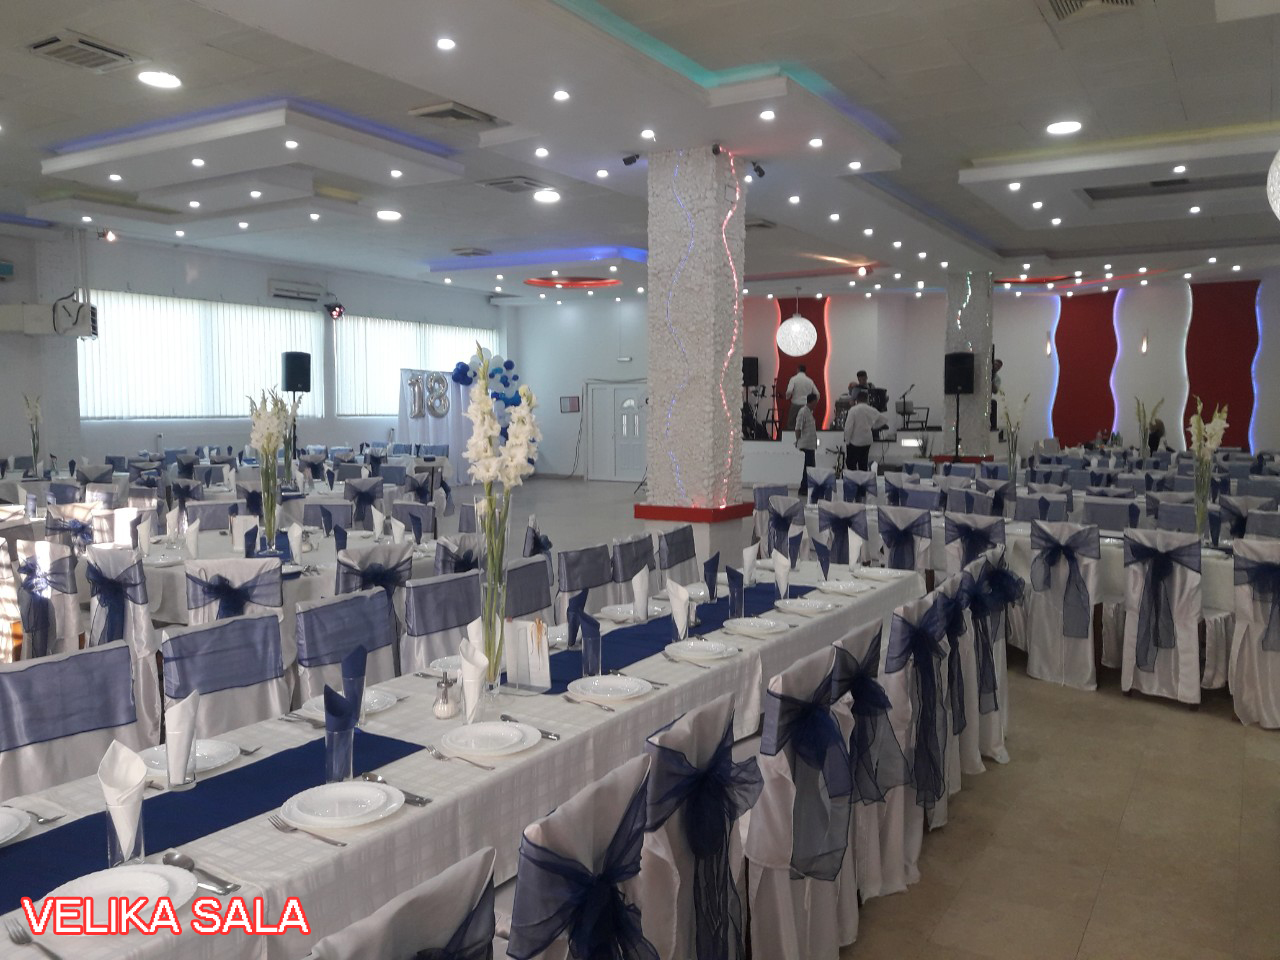 GRAND HALL KACAREVO AND CAFFE GRILL TICINO Renting halls Pancevo - Photo 7